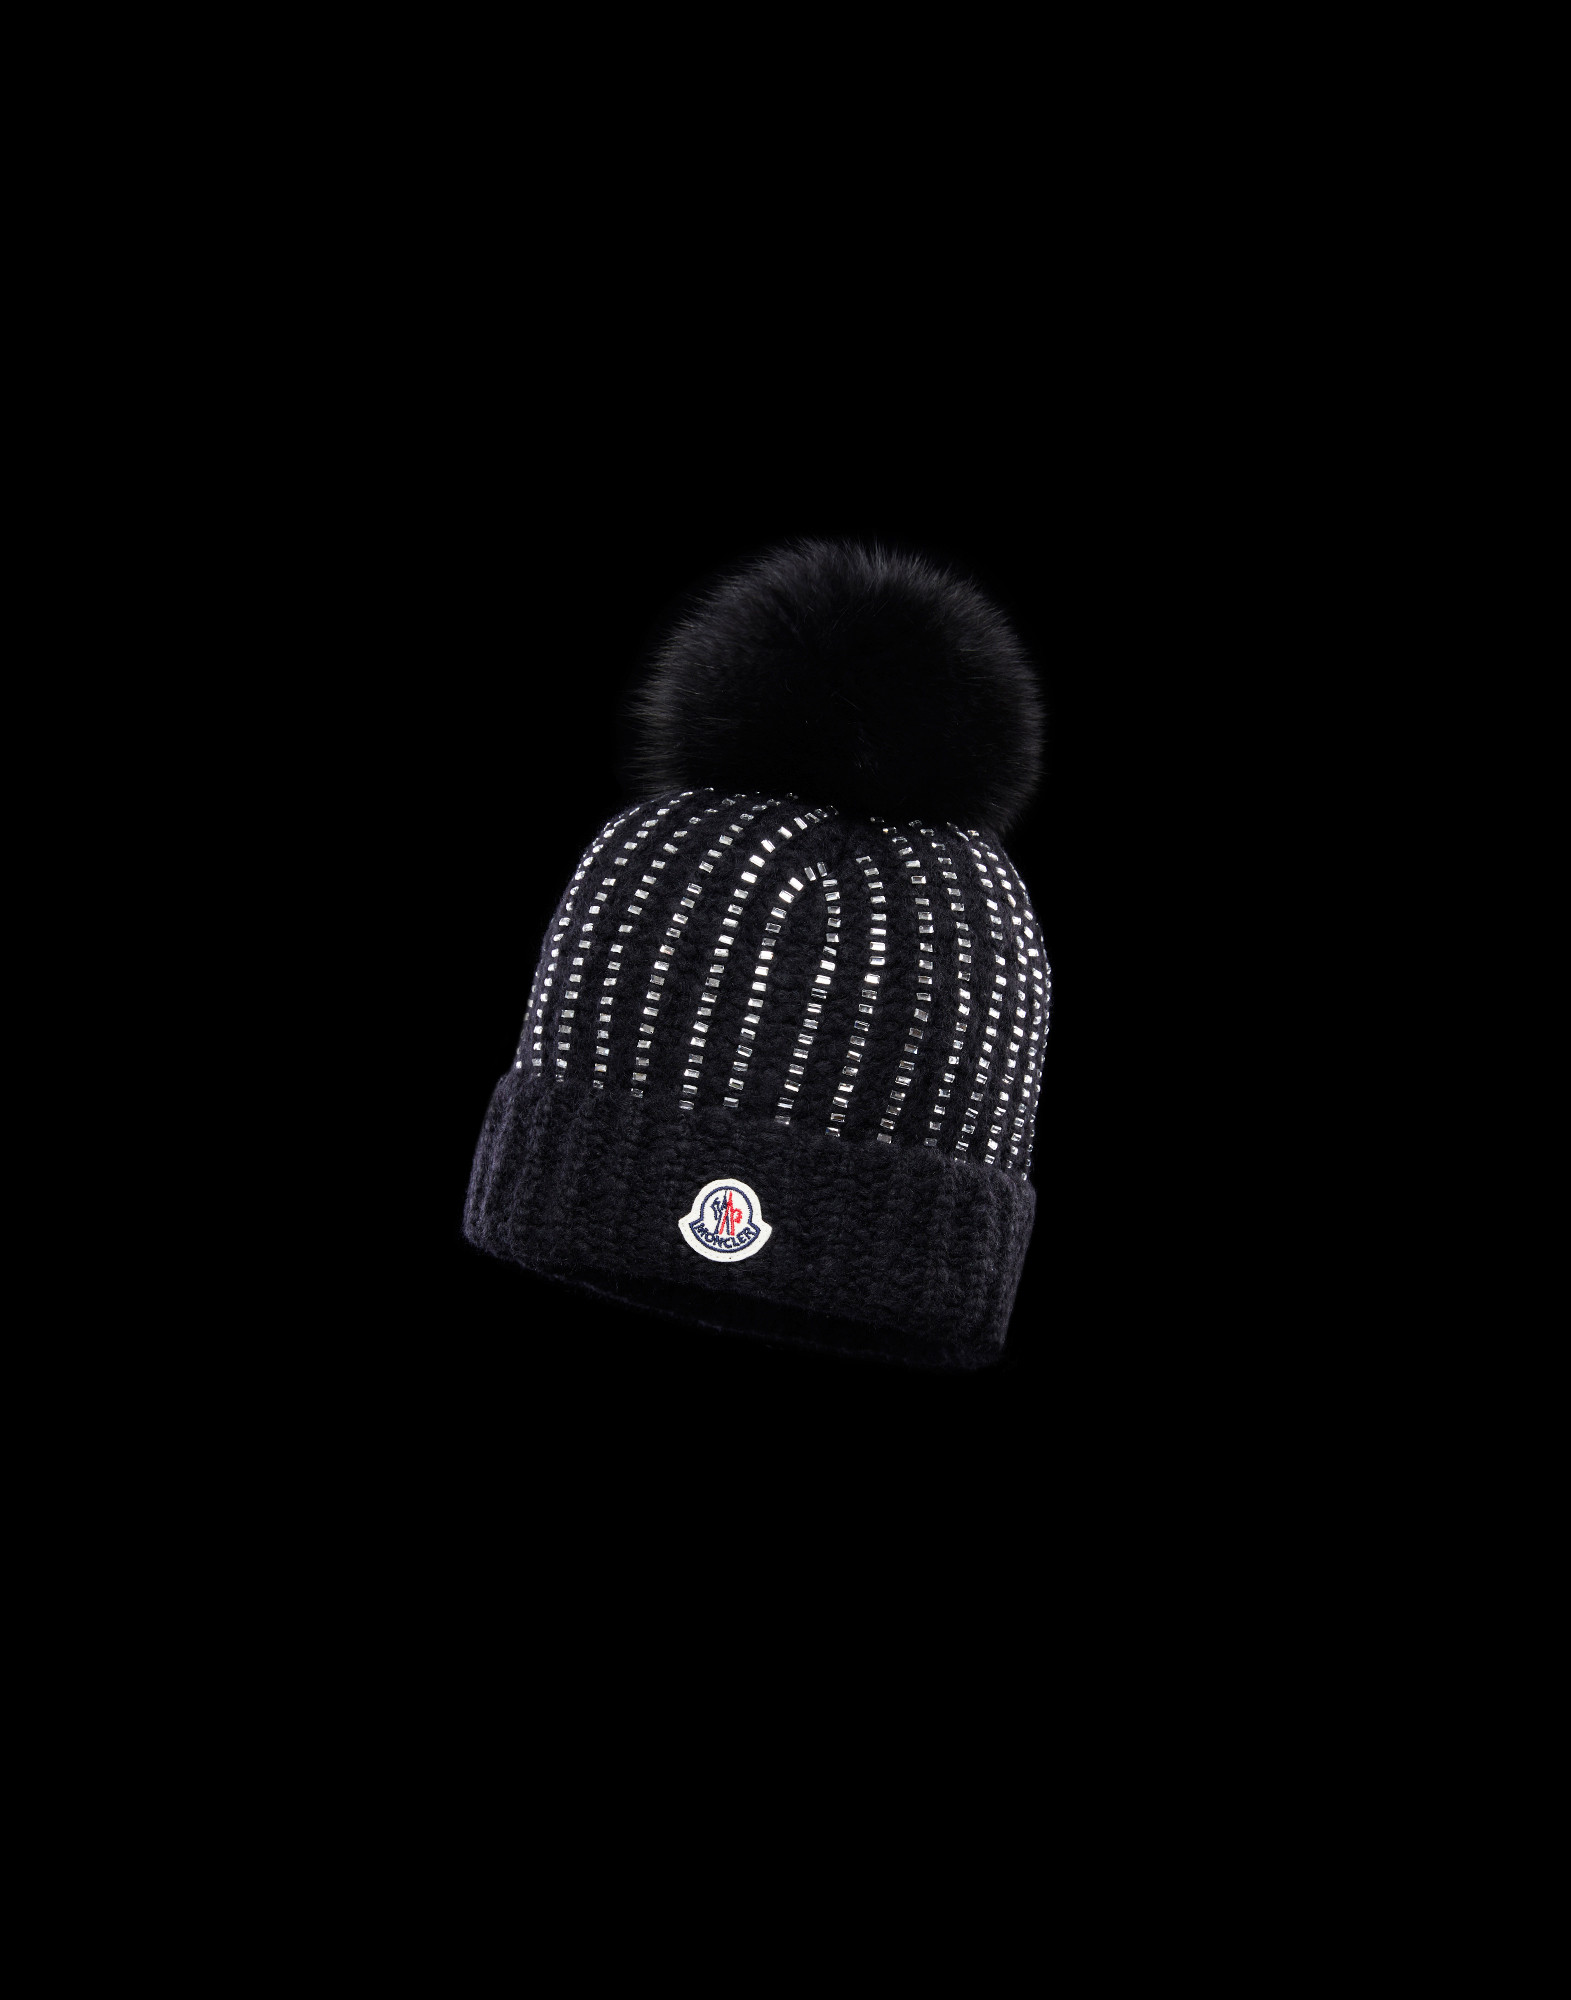 lowest discount 50% price innovative design Clothing and down jackets for men, women and kids | Moncler